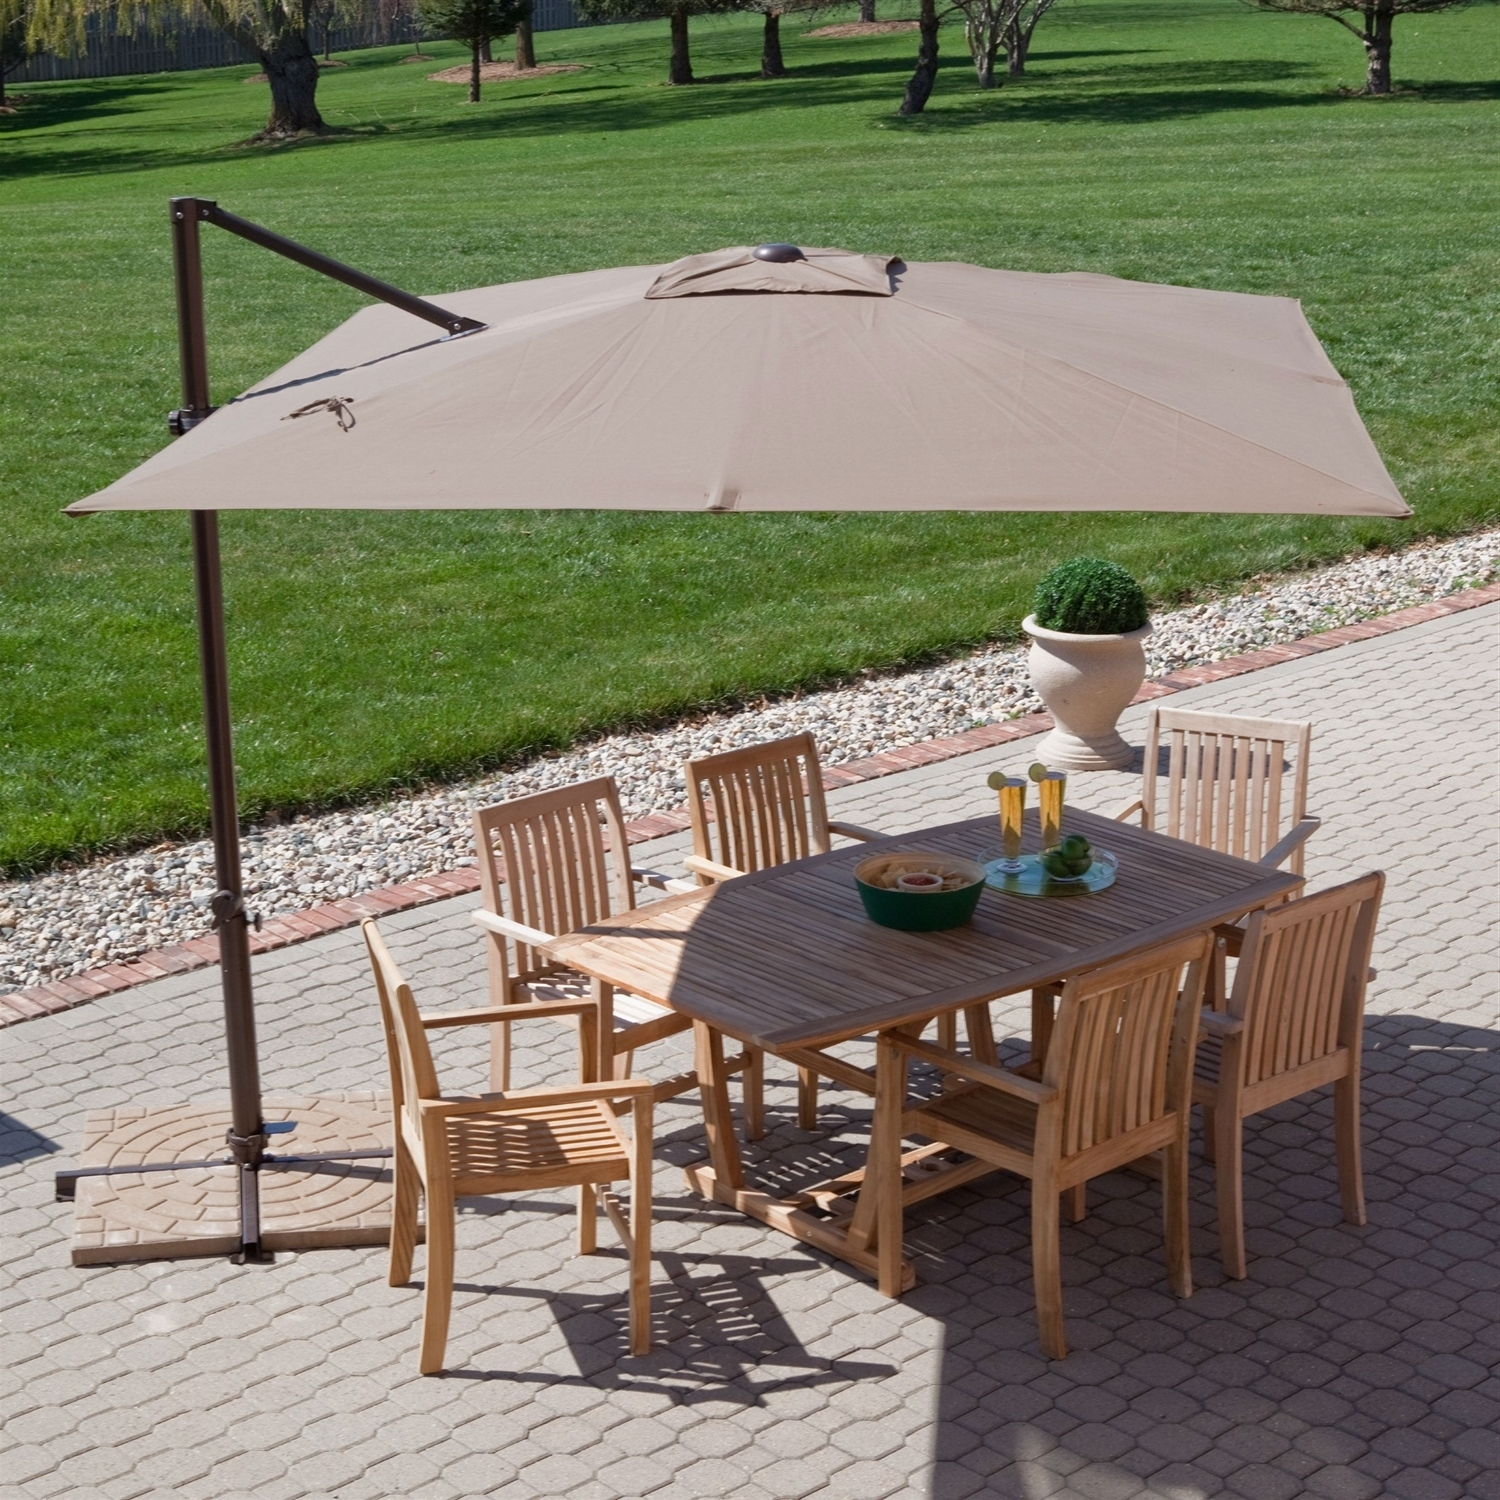 A Guide To Buying Offset Patio Umbrella – Blogbeen Regarding Most Recent Cheap Patio Umbrellas (Gallery 7 of 20)